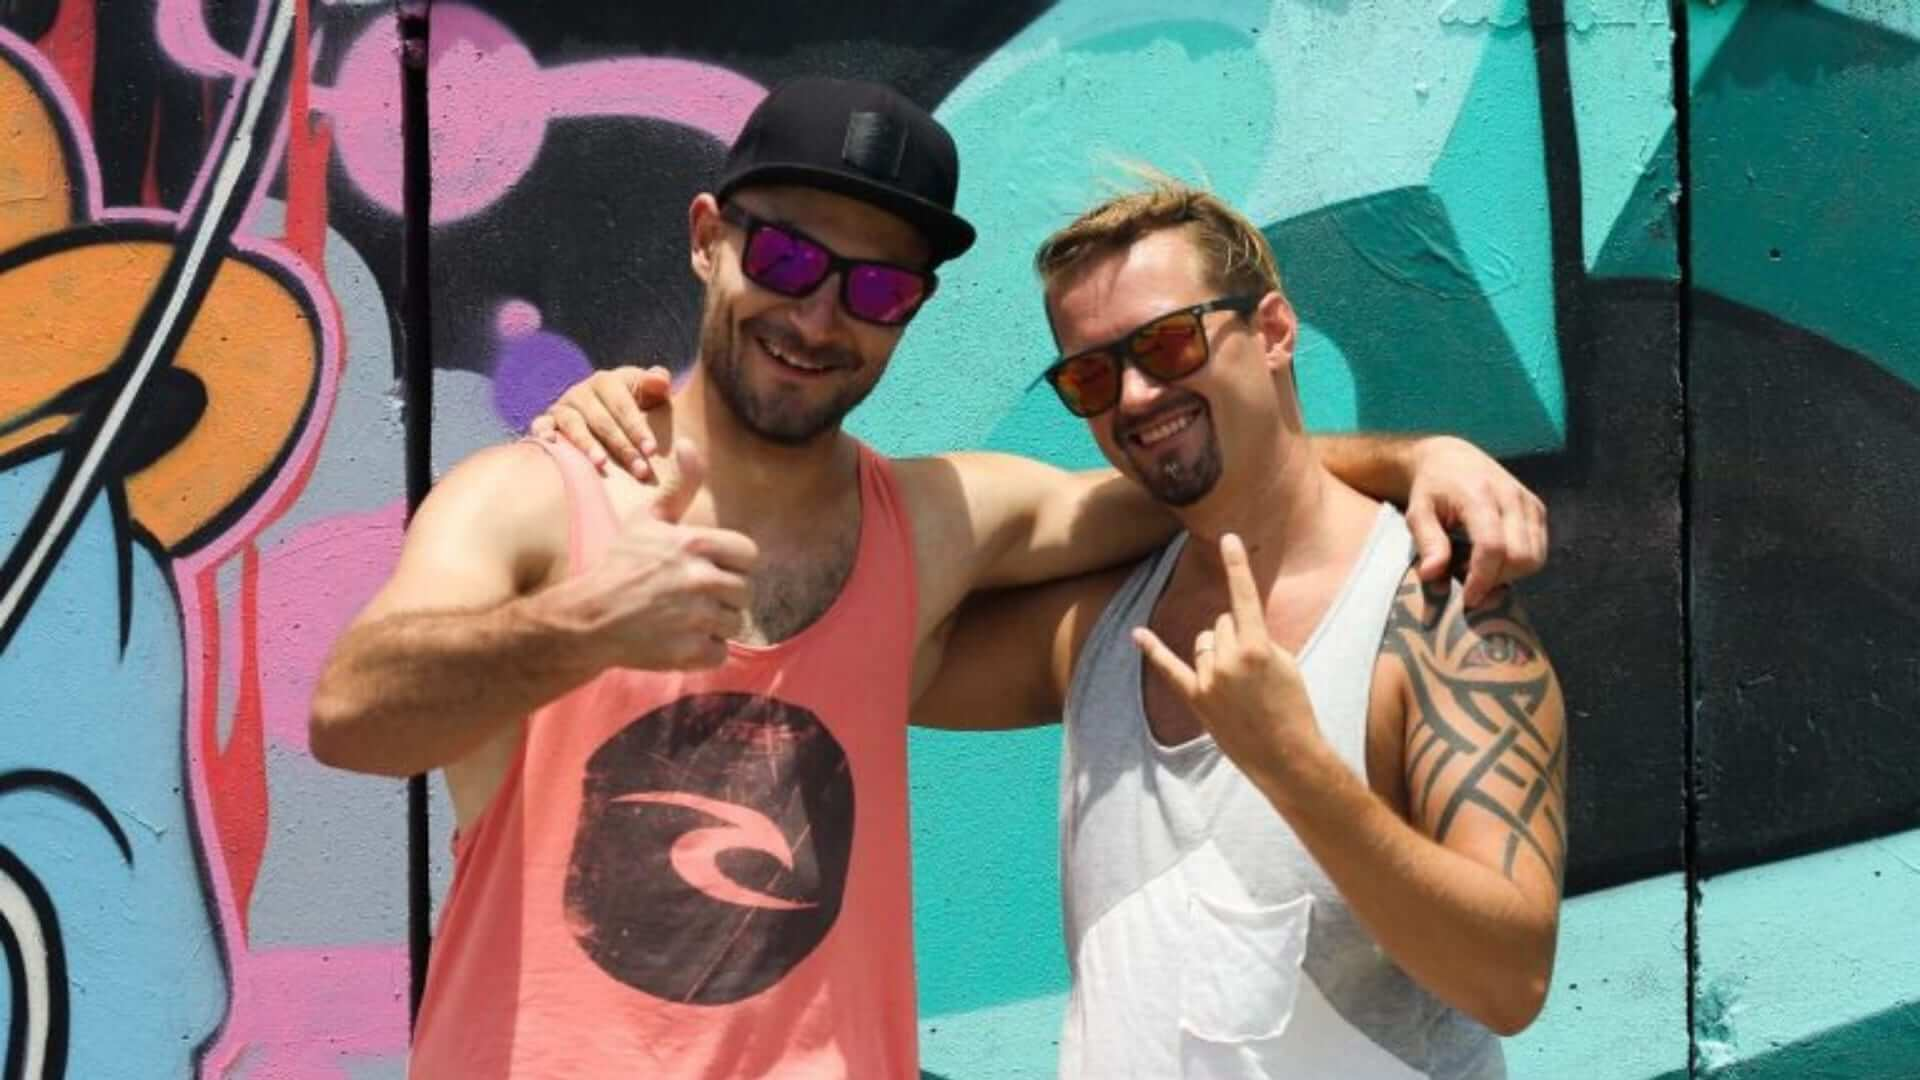 Two man who are wearing sunglasses and tanktops are embracing eachother and making hand gestures in front of a graffiti wall in Bali.